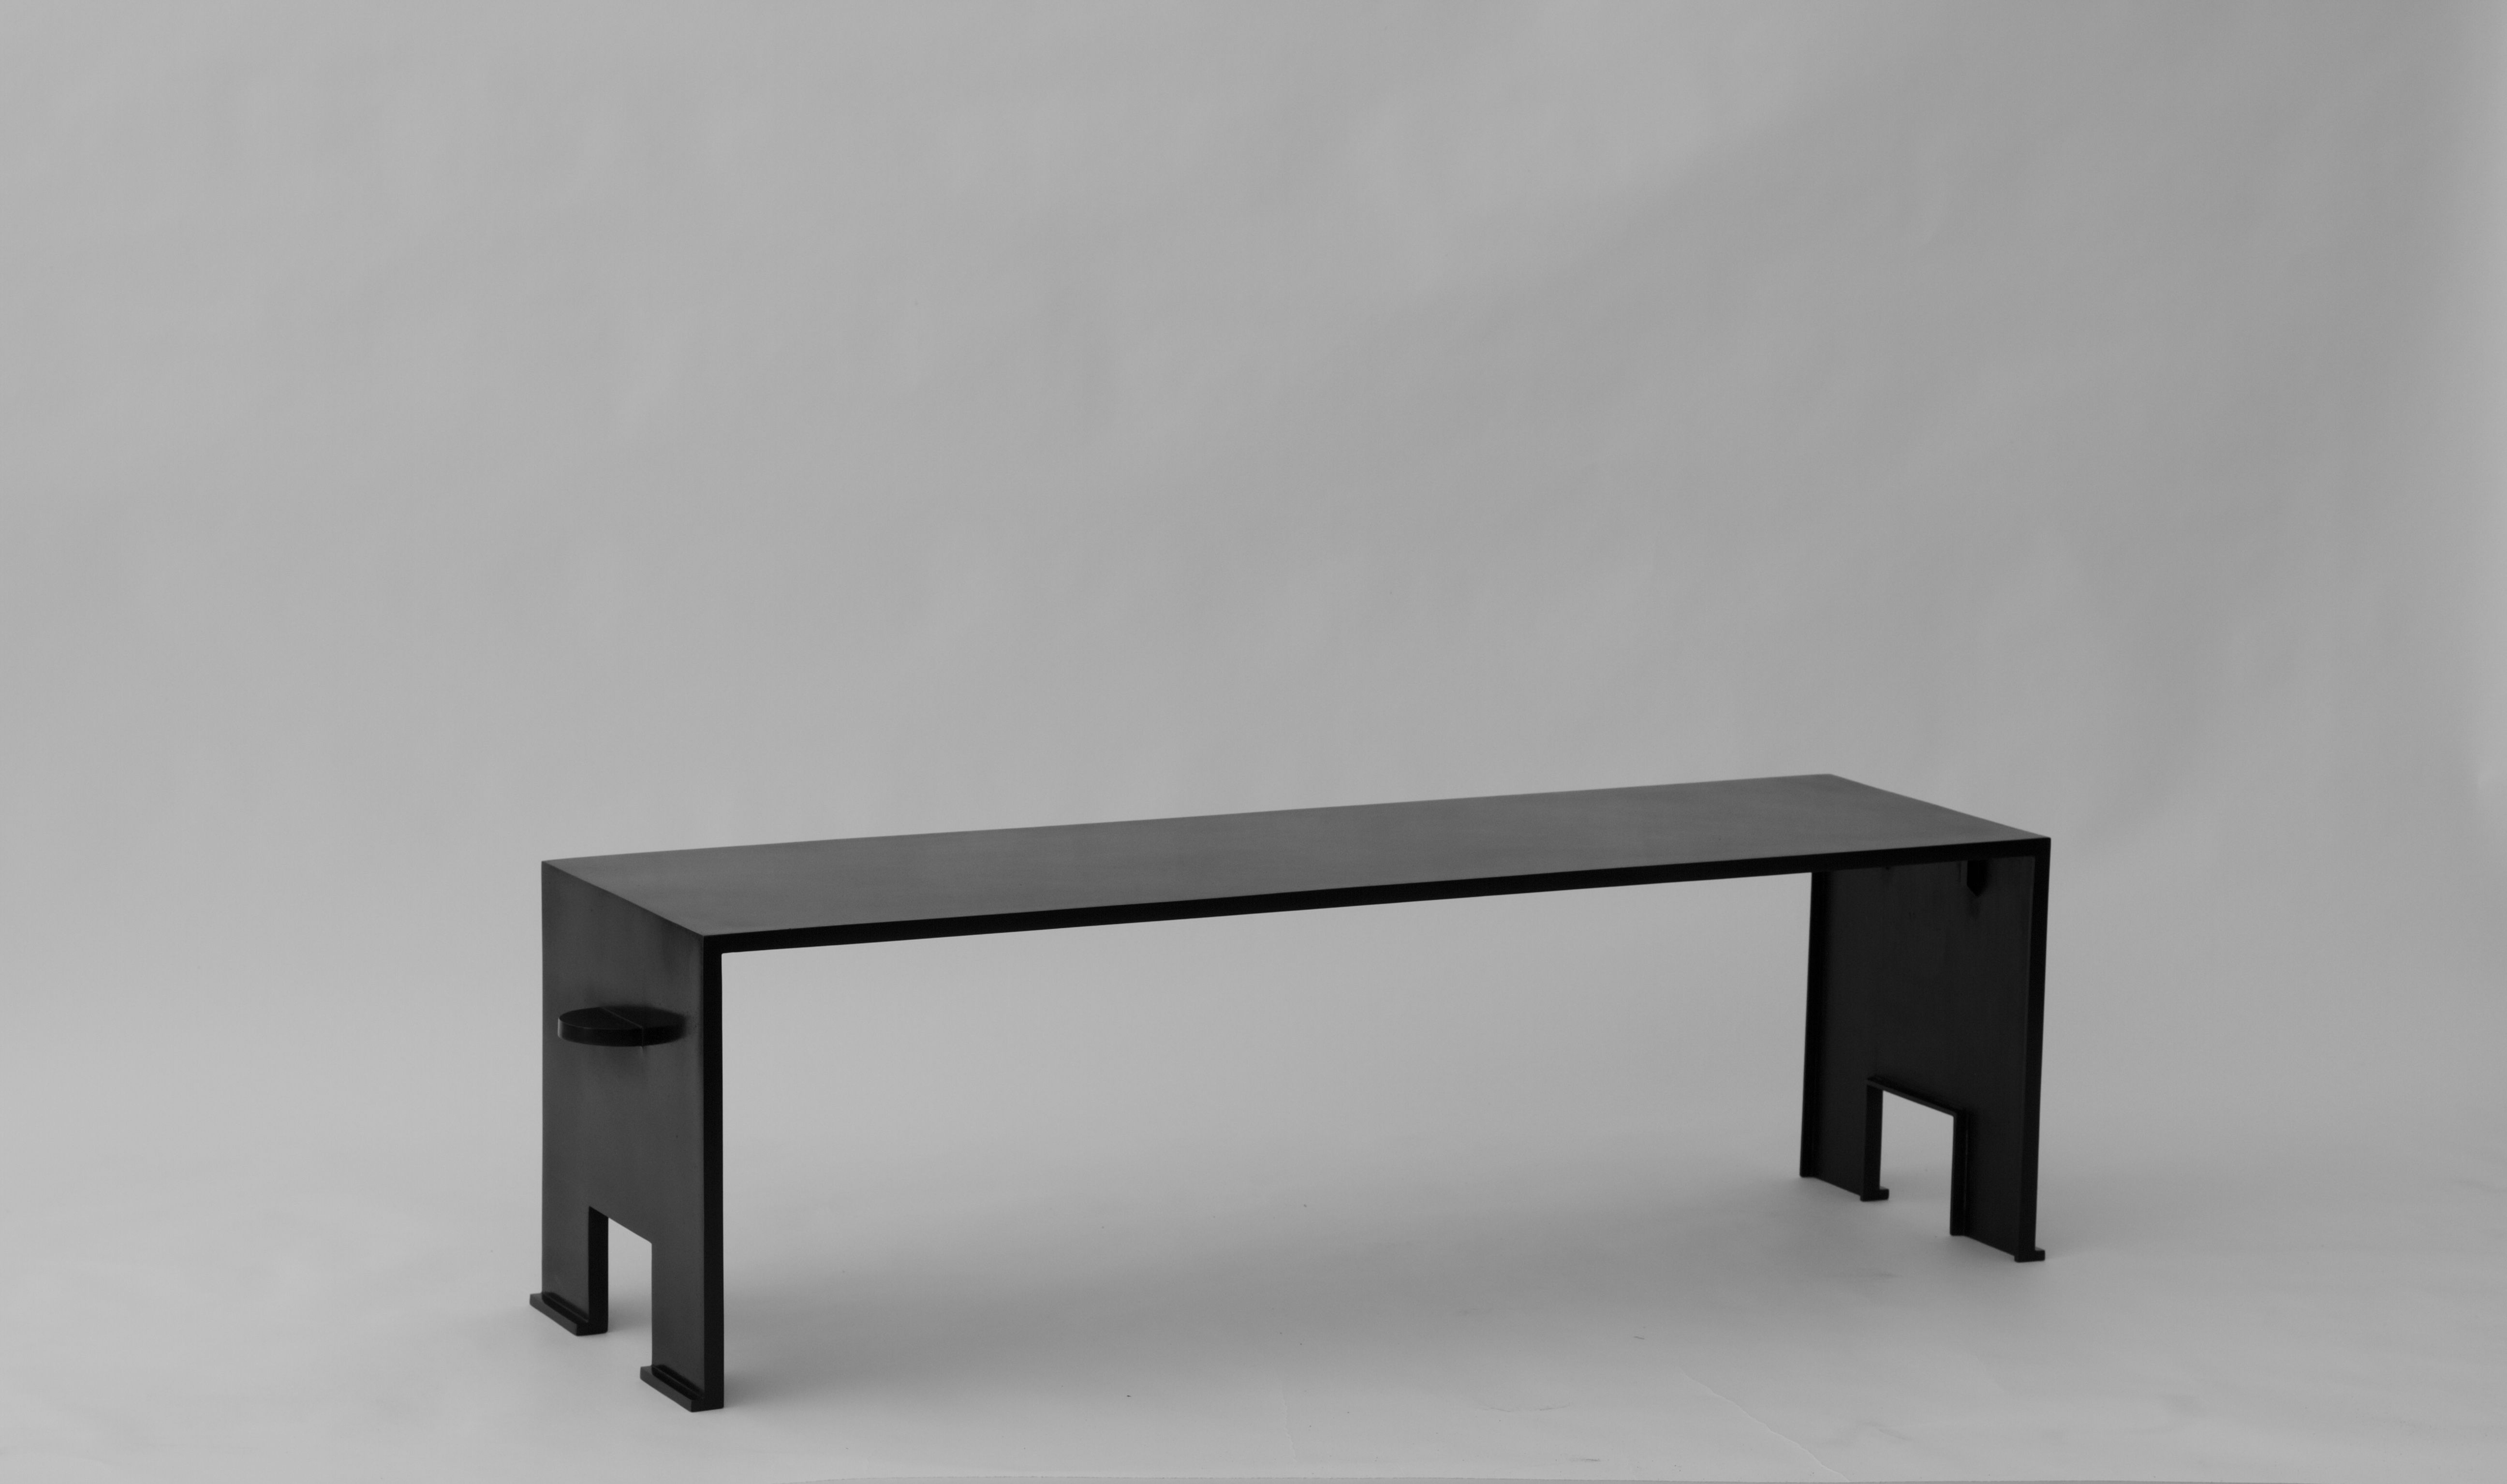 1e0d0f19d9425a7532a8cc3060c02f16 Top Result 50 Luxury Black and White Coffee Table Image 2017 Shdy7